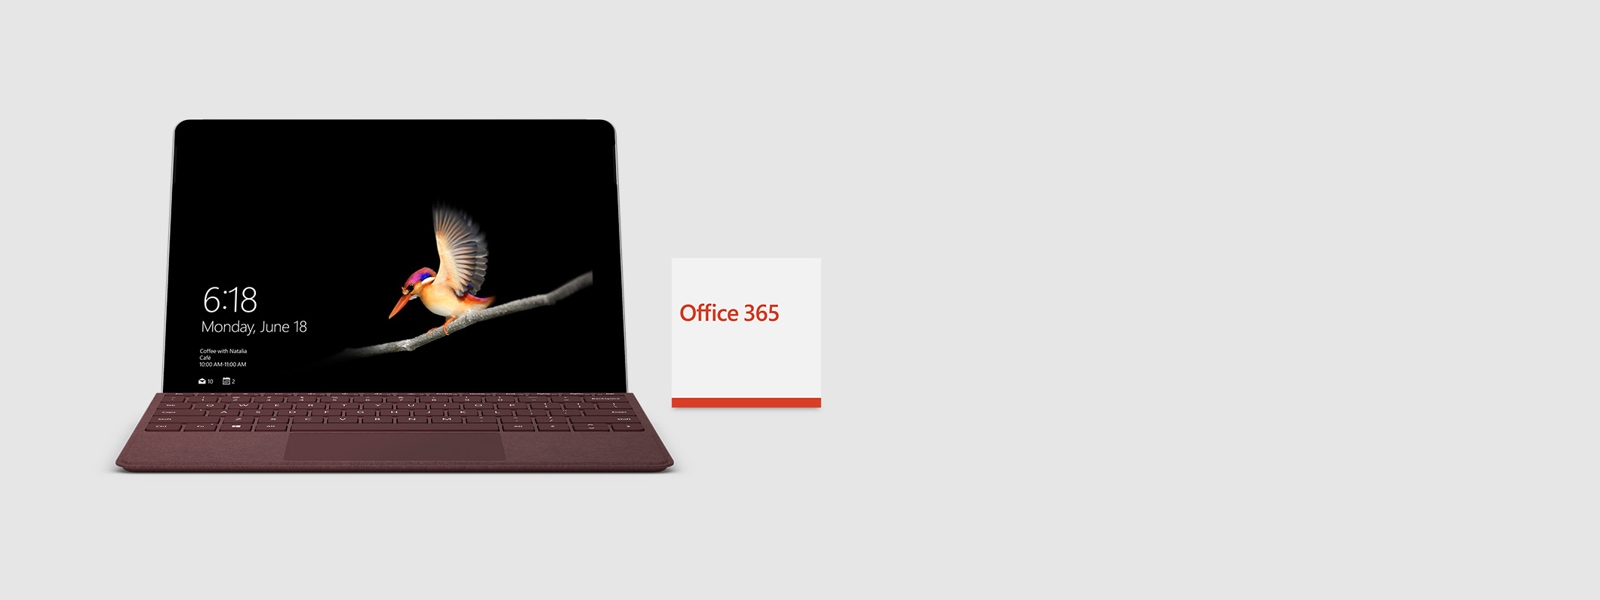 Computers: PCs, Tablets, Laptops and More - Microsoft Store